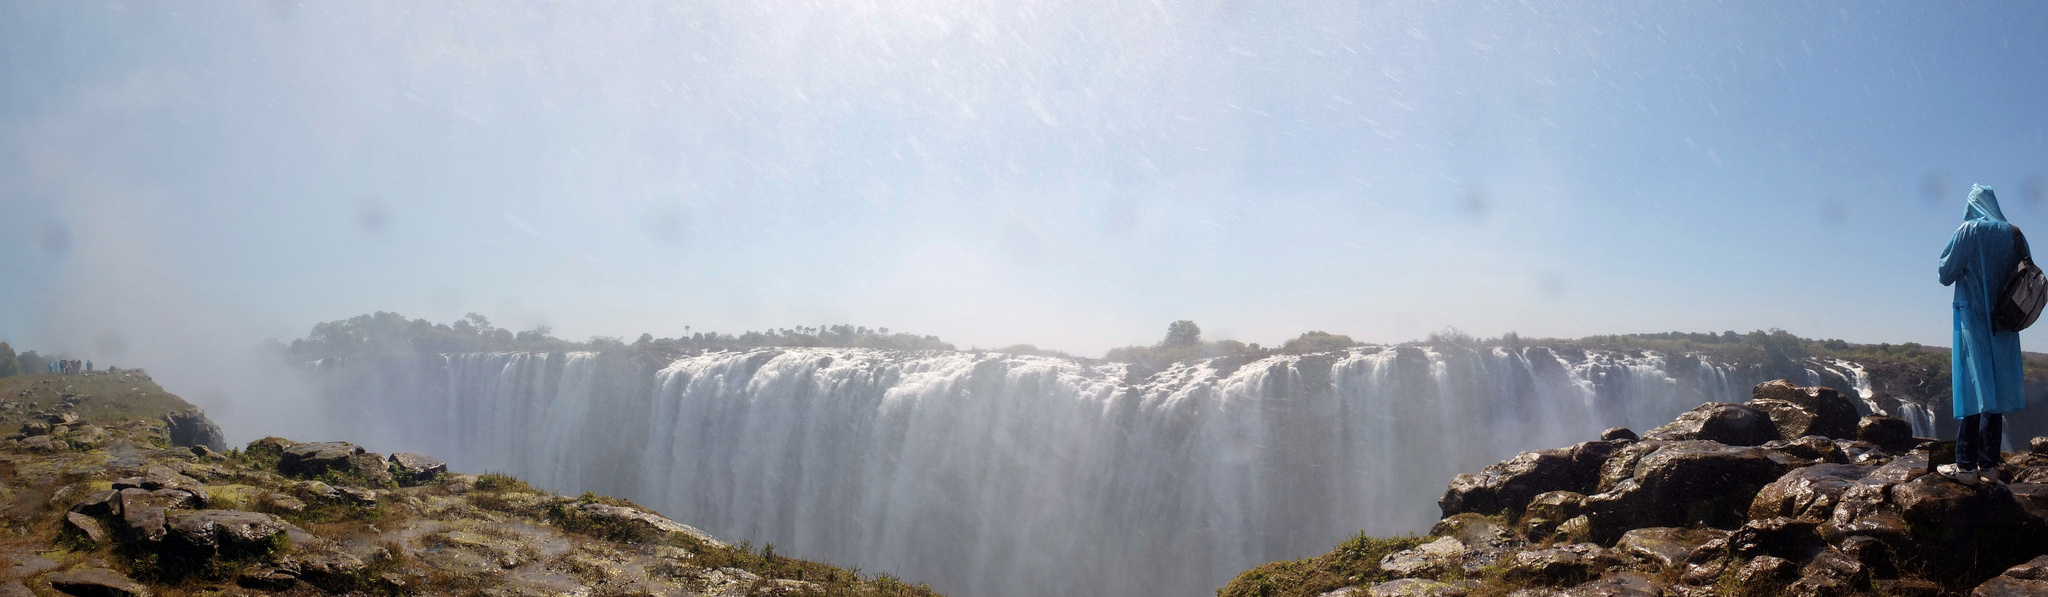 Victoria Falls. CC2.0 photo by Tee La Rosa.